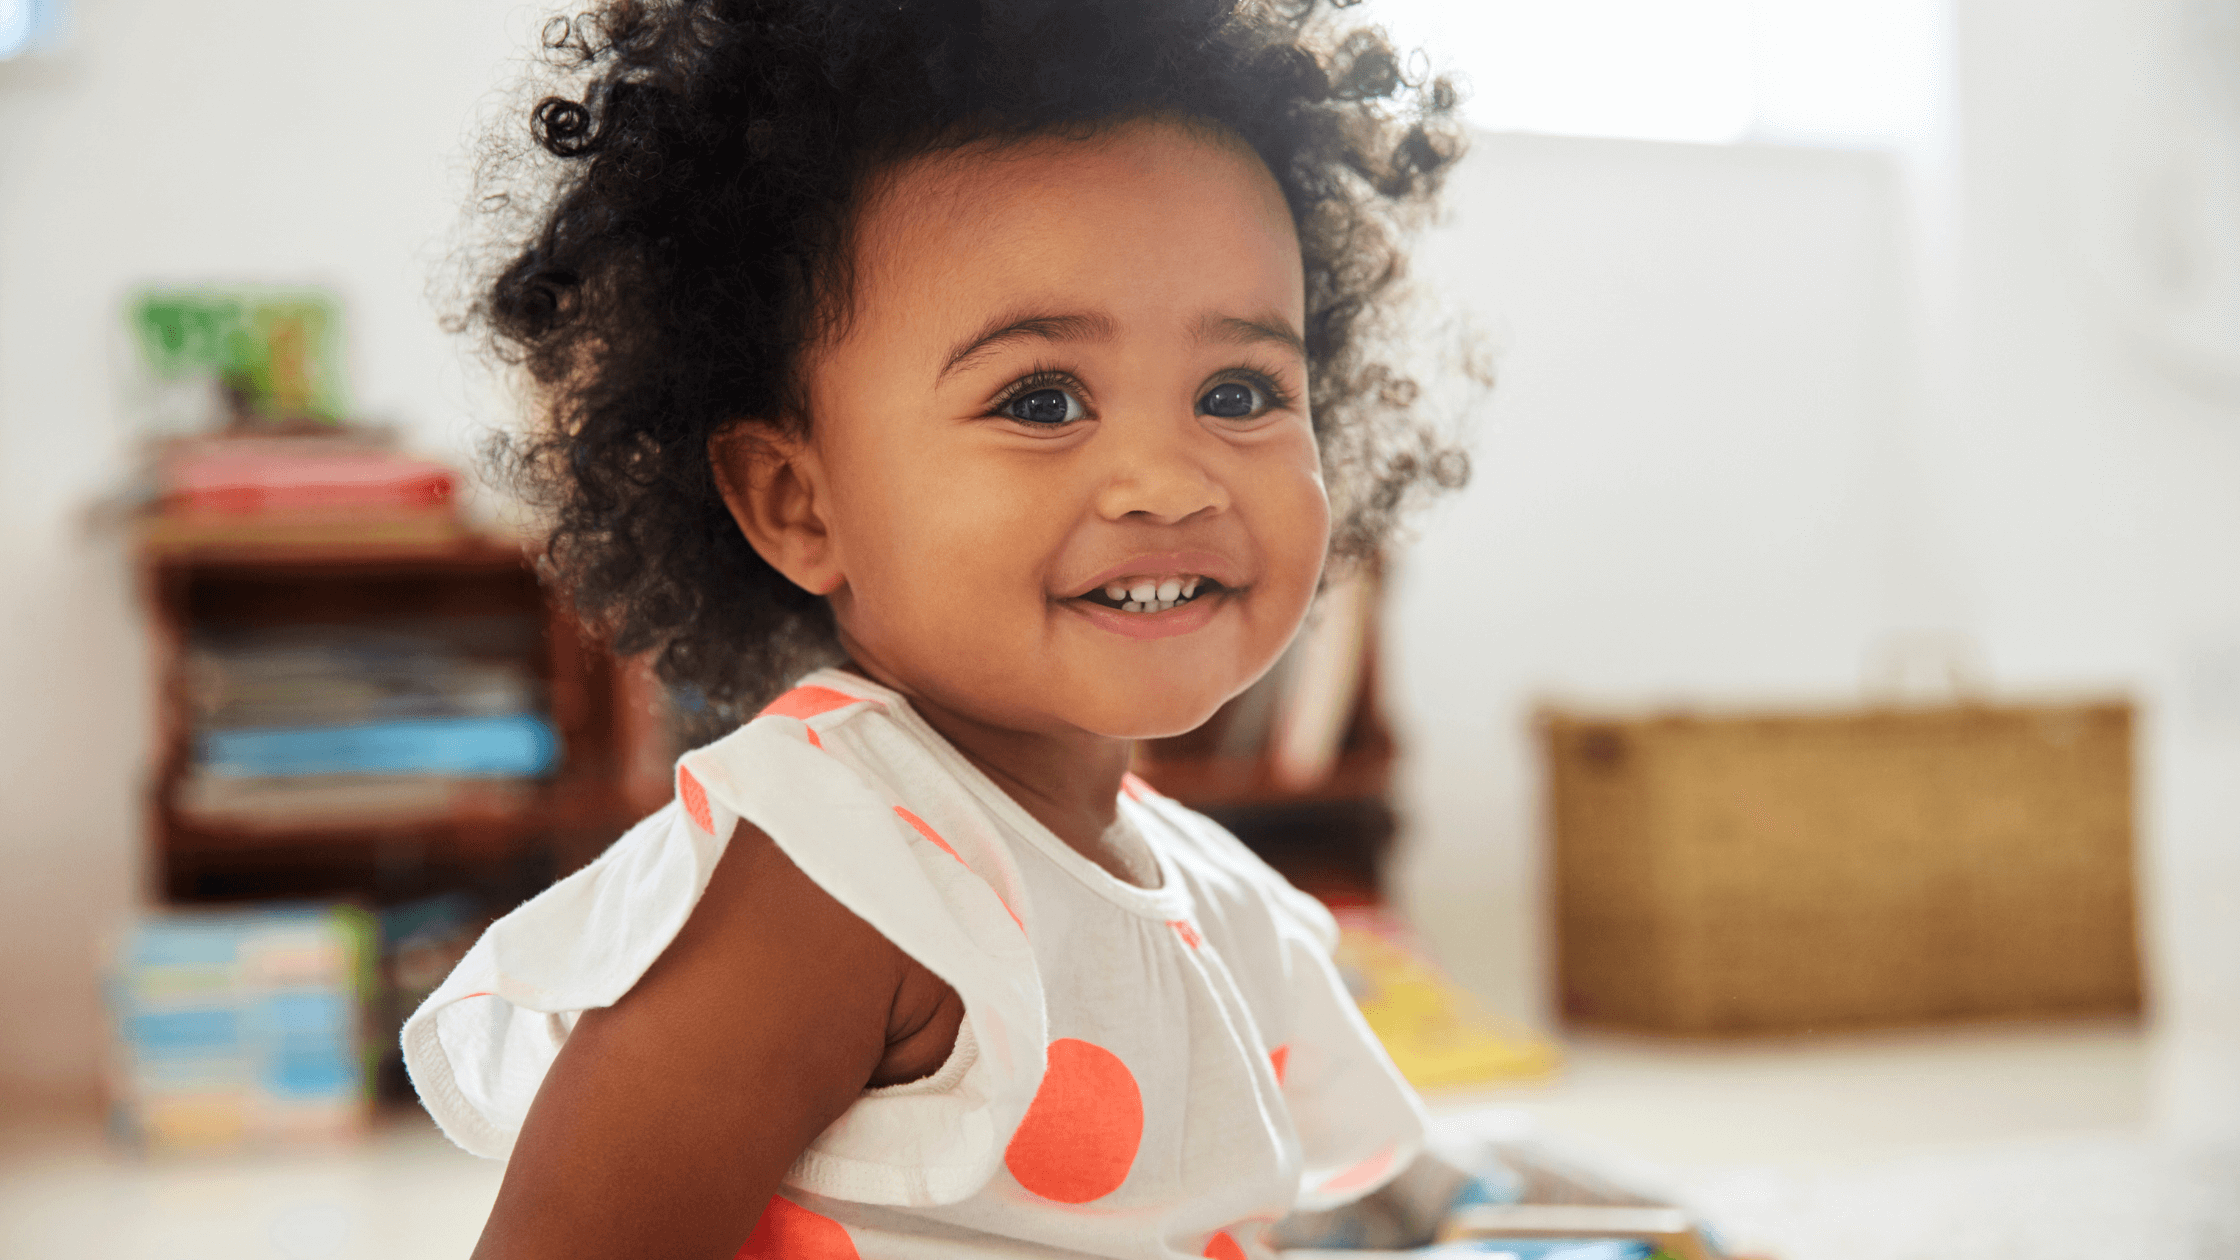 Five tips to healthy baby teeth